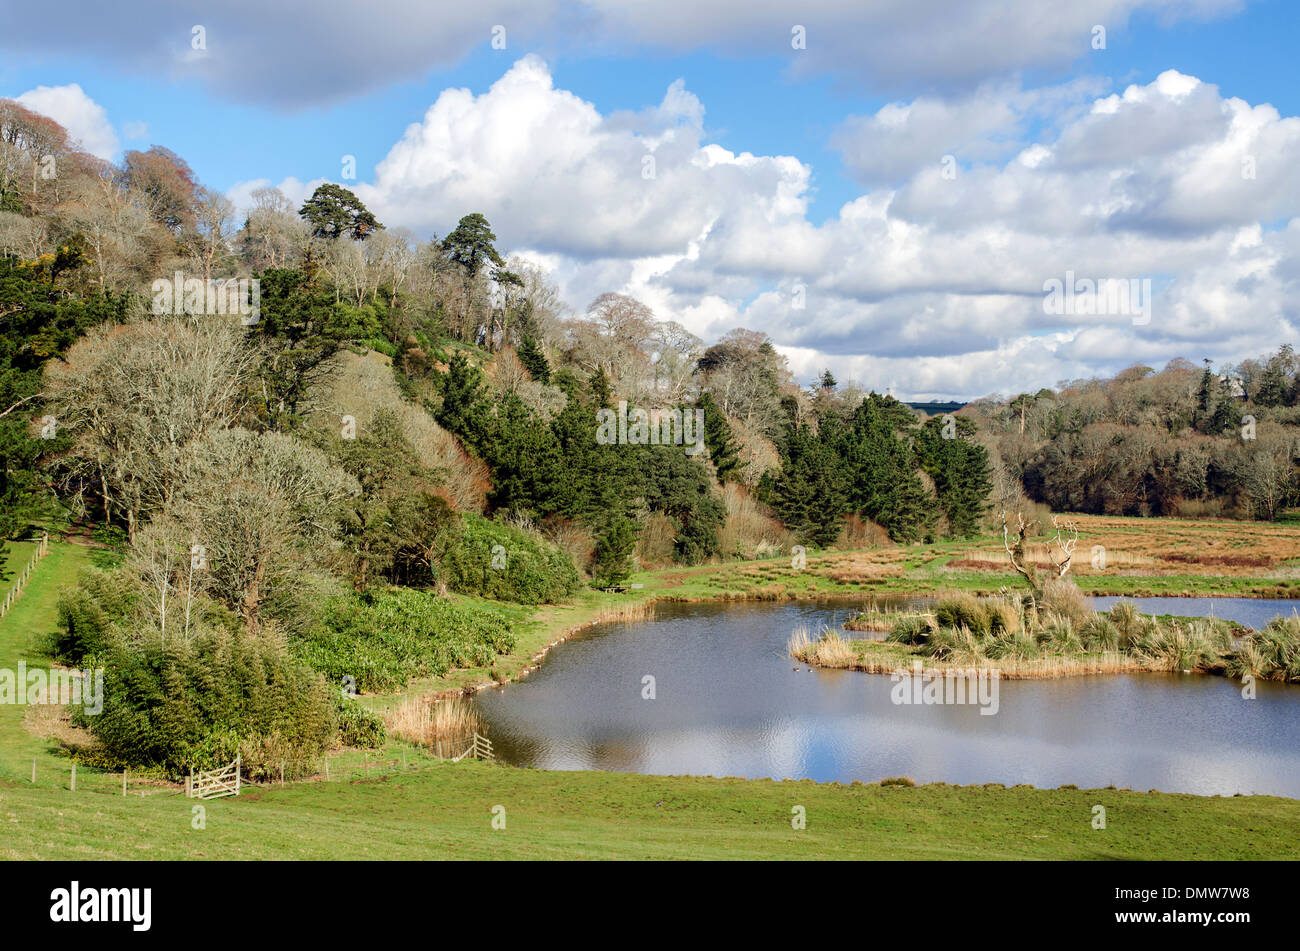 The landscaped gardens at Caerhays castle estate in Cornwall, UK - Stock Image